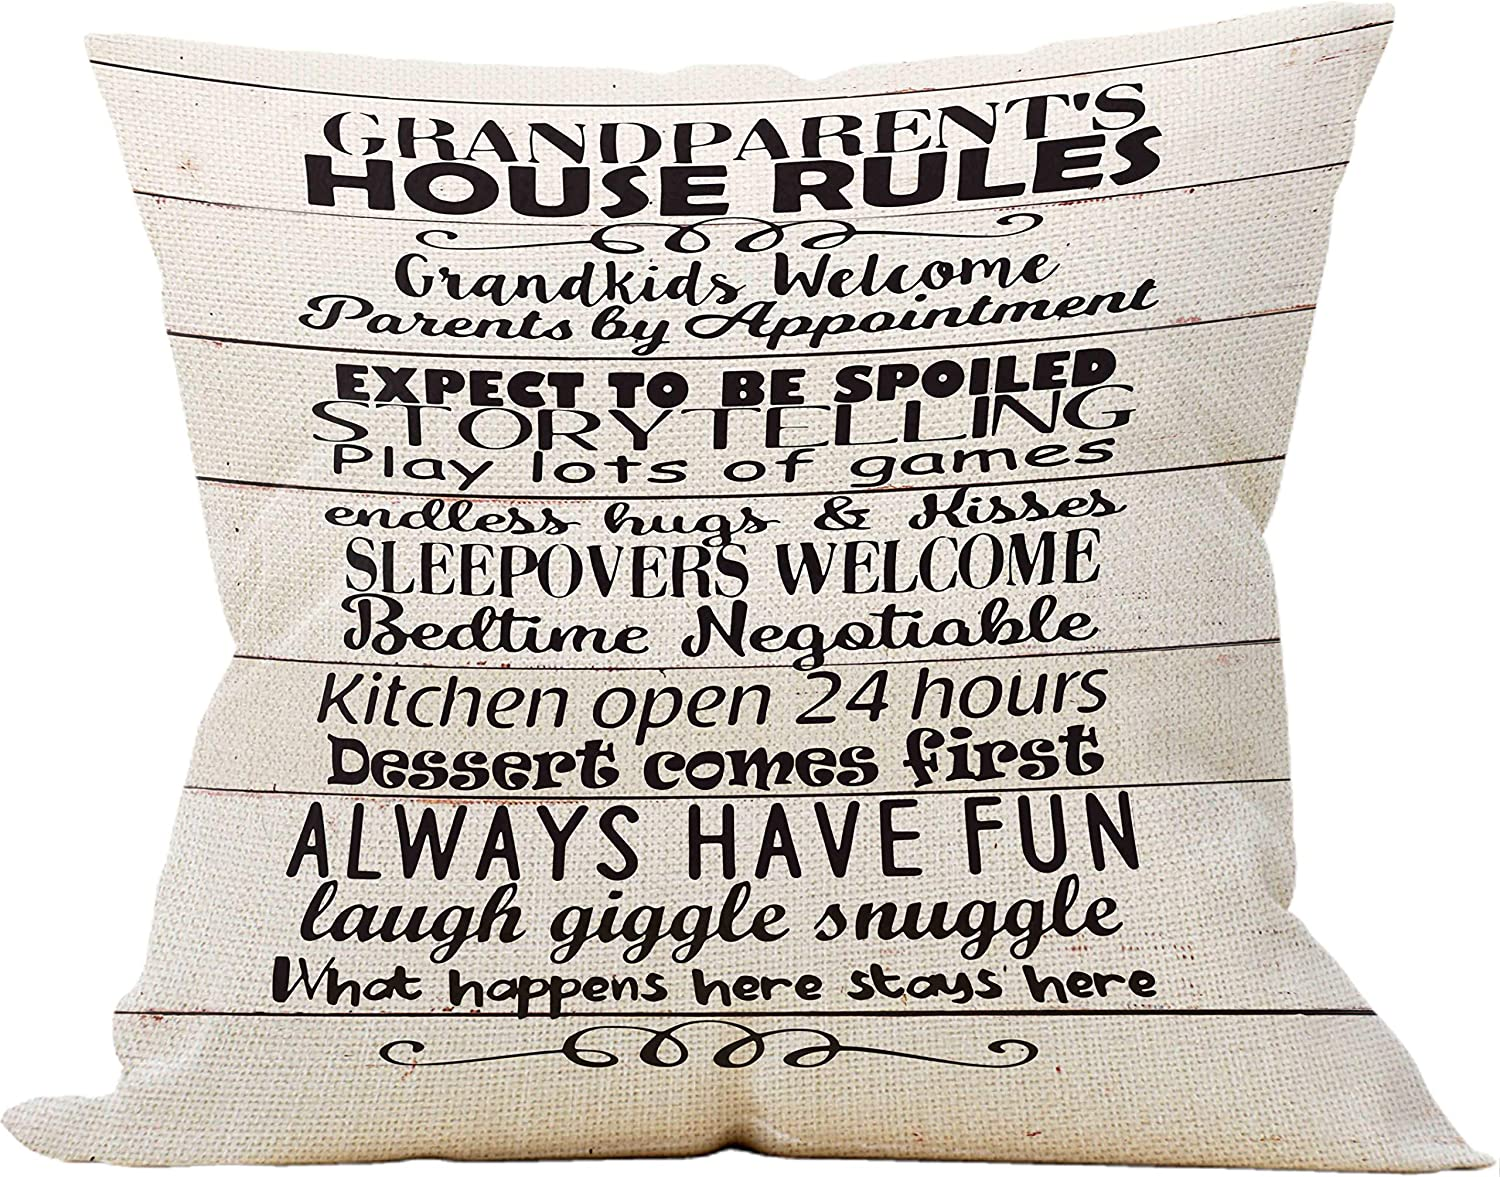 Grandparent's House Rules Throw Pillow Case, Grandpa Gifts, Front Porch Bench Decorations, Housewarming Gift, Porch Decor, 18 x 18 Inch Farmhouse Decorative Linen Cushion Cover for Sofa Couch Bed